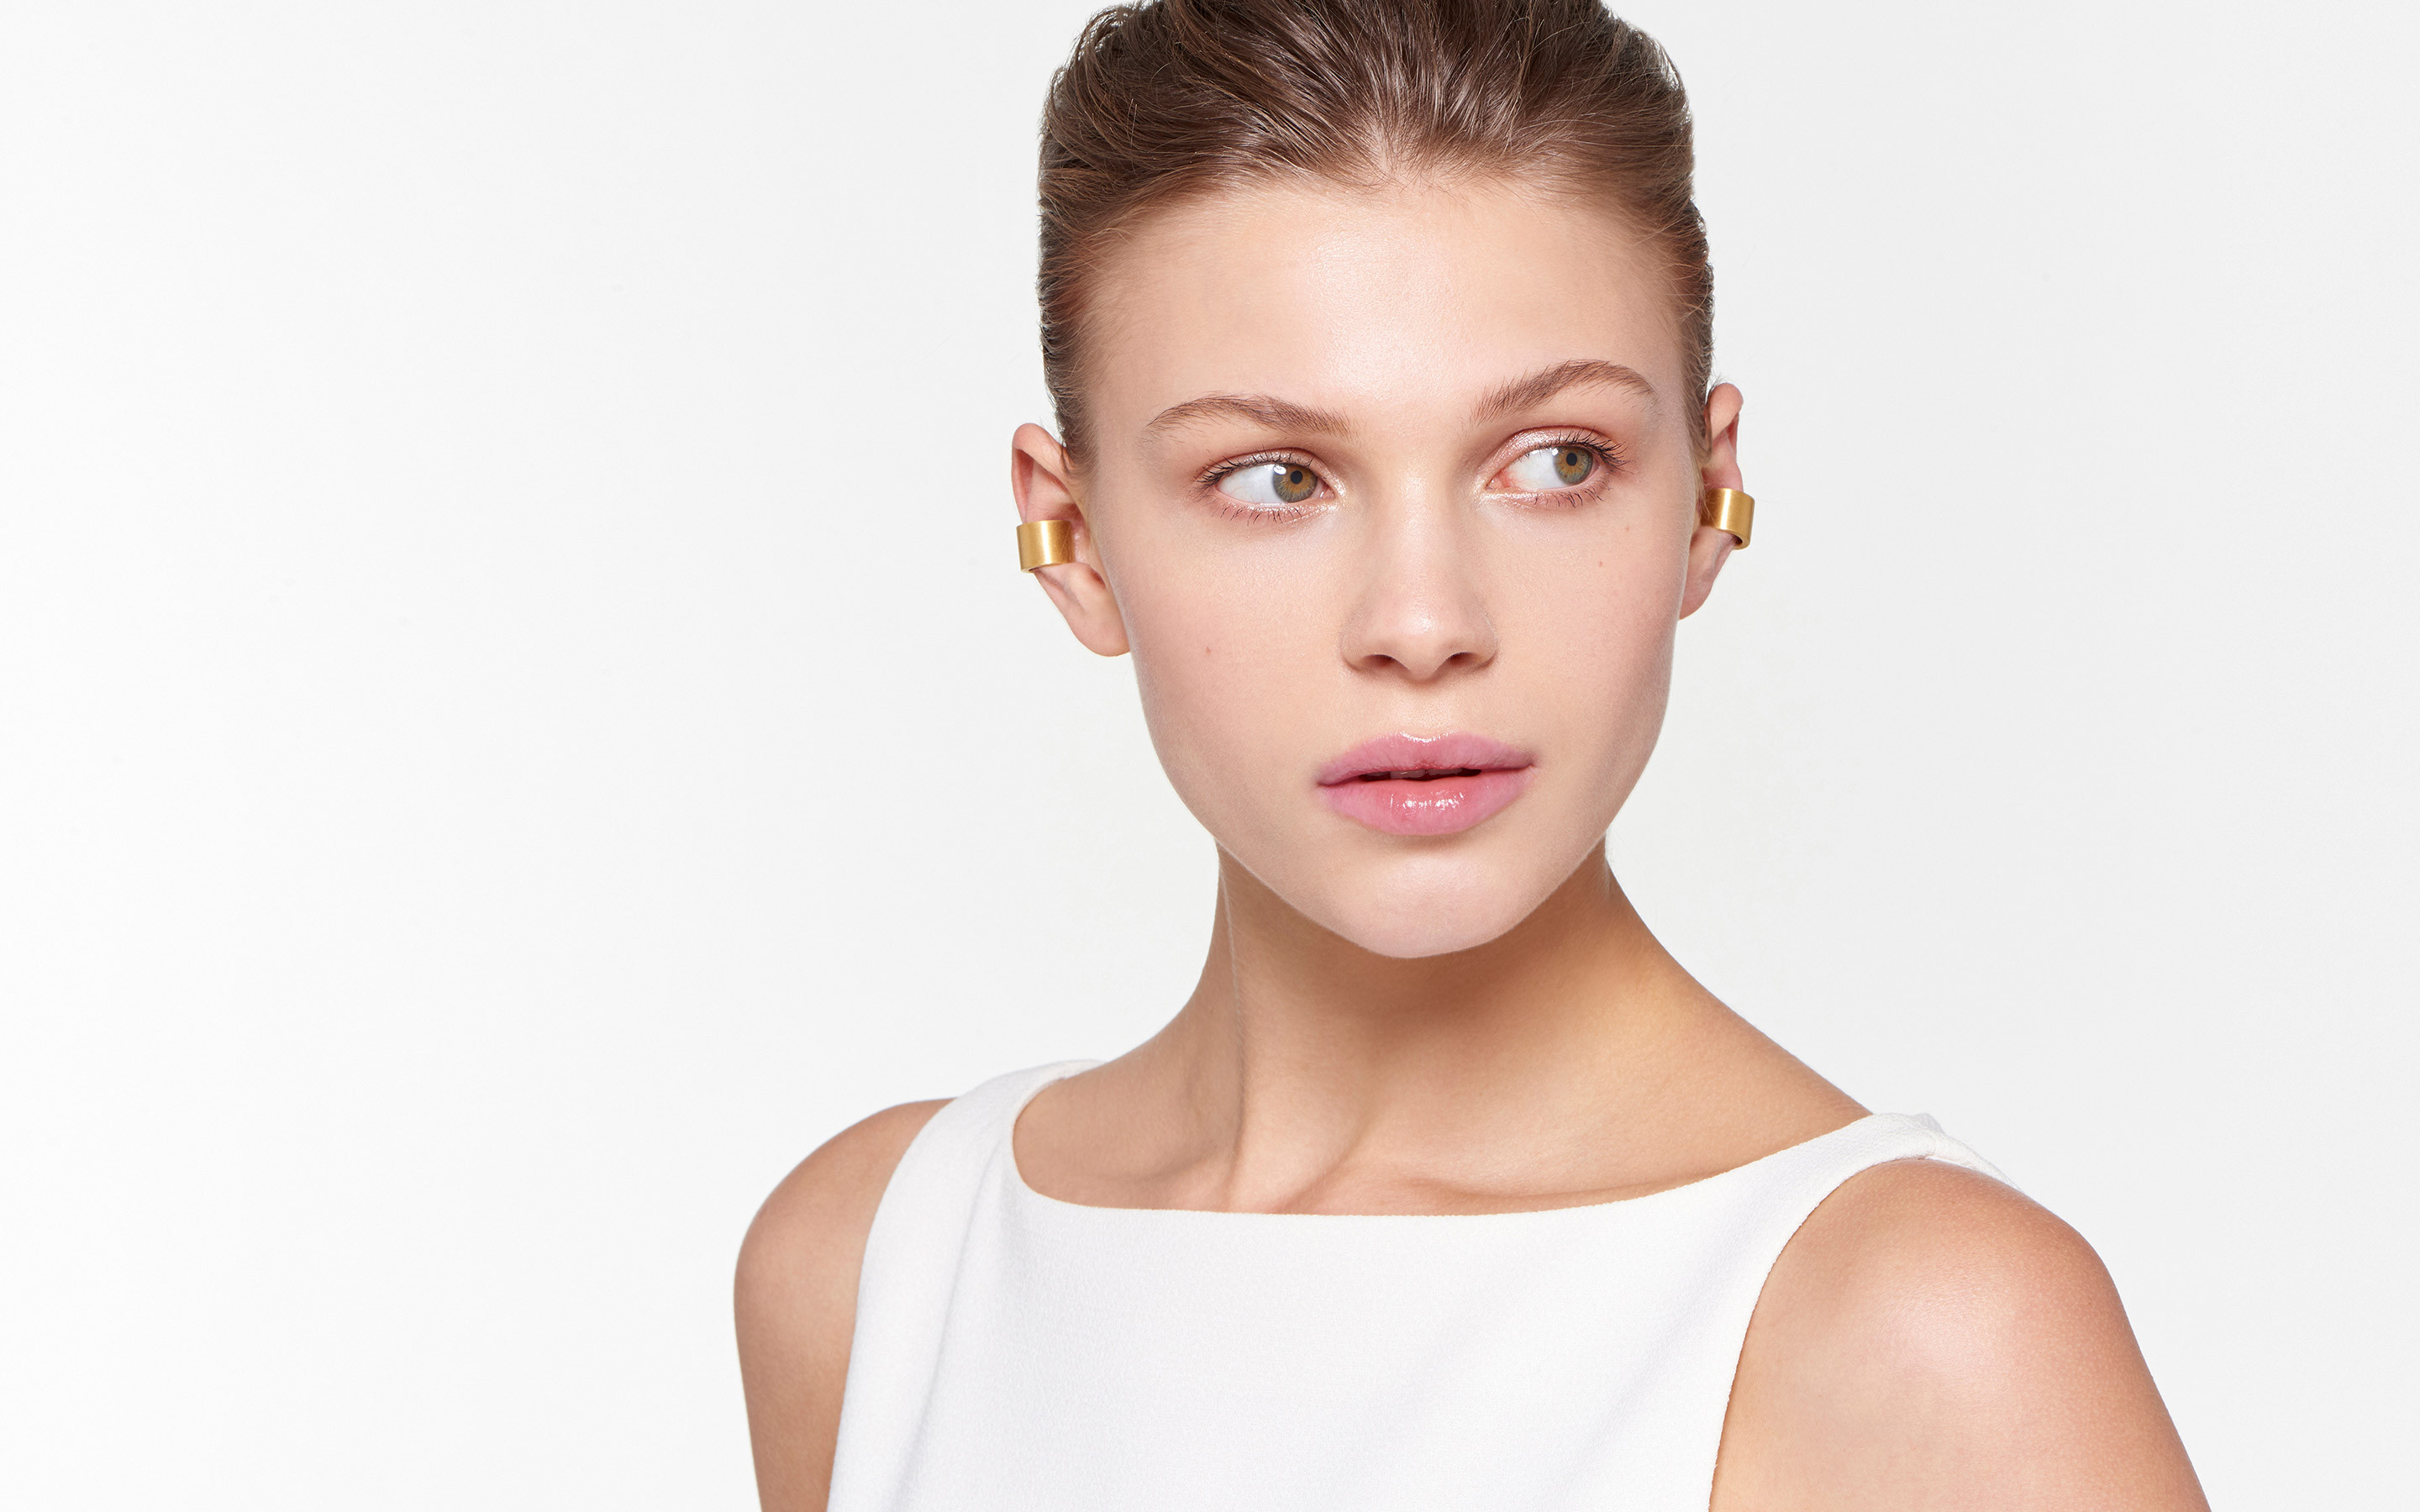 lovely female model glancing sideways wearing vibrant 22 karat gold ear cuffs in satin finish